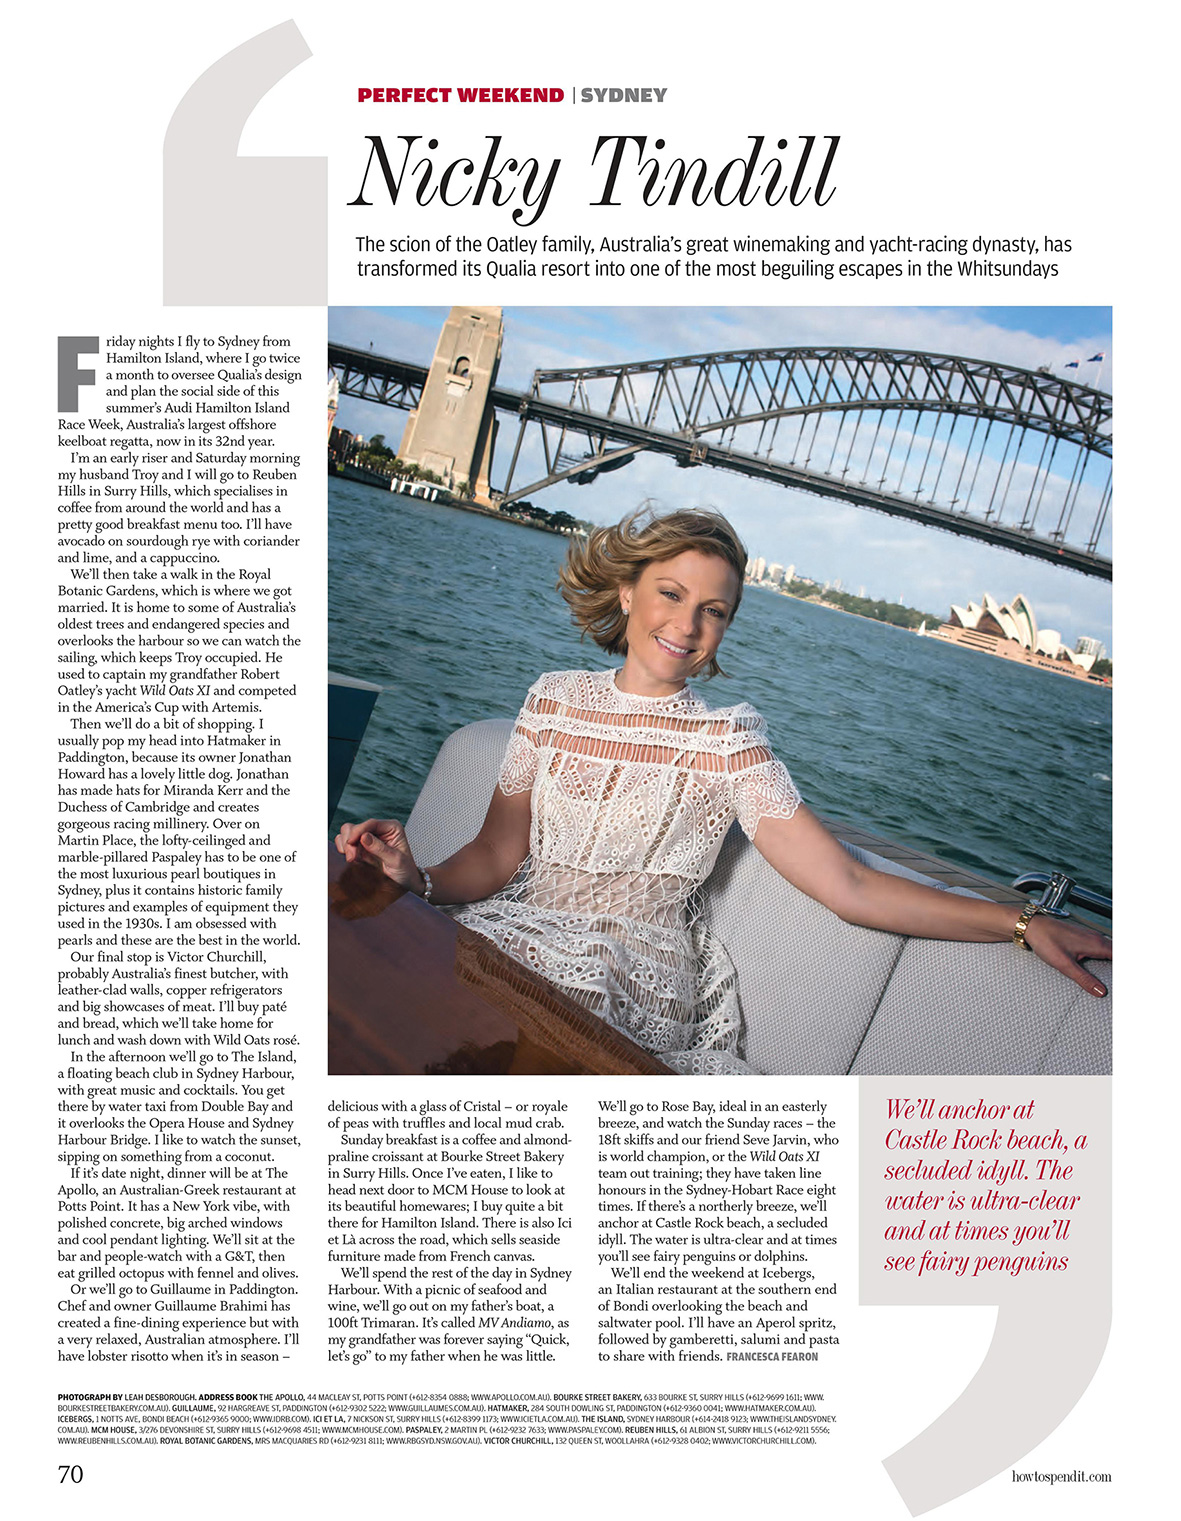 How to Spend It Magazine - Financial Times London   Leah